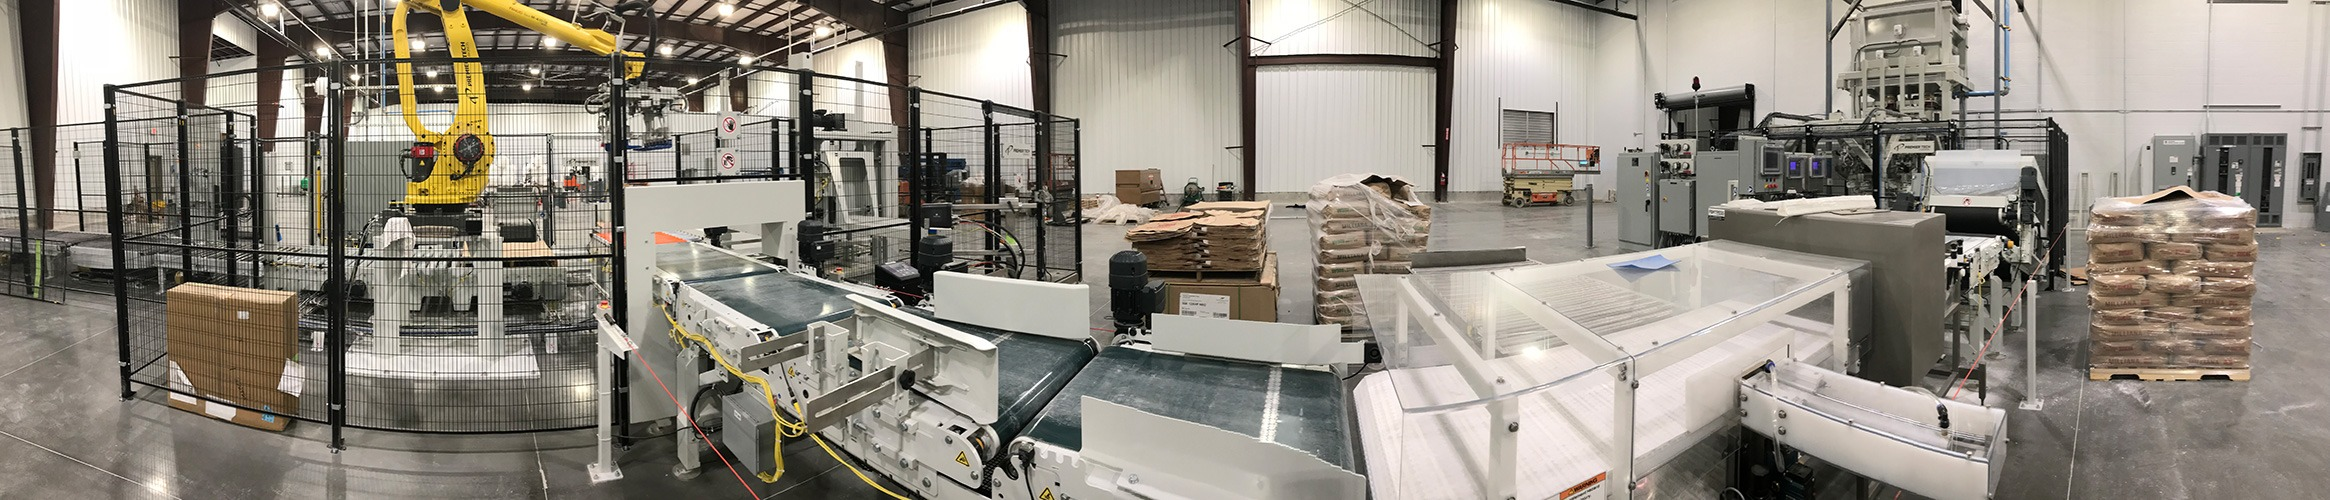 Powdered sugar plant systems integrated with USS Automation.